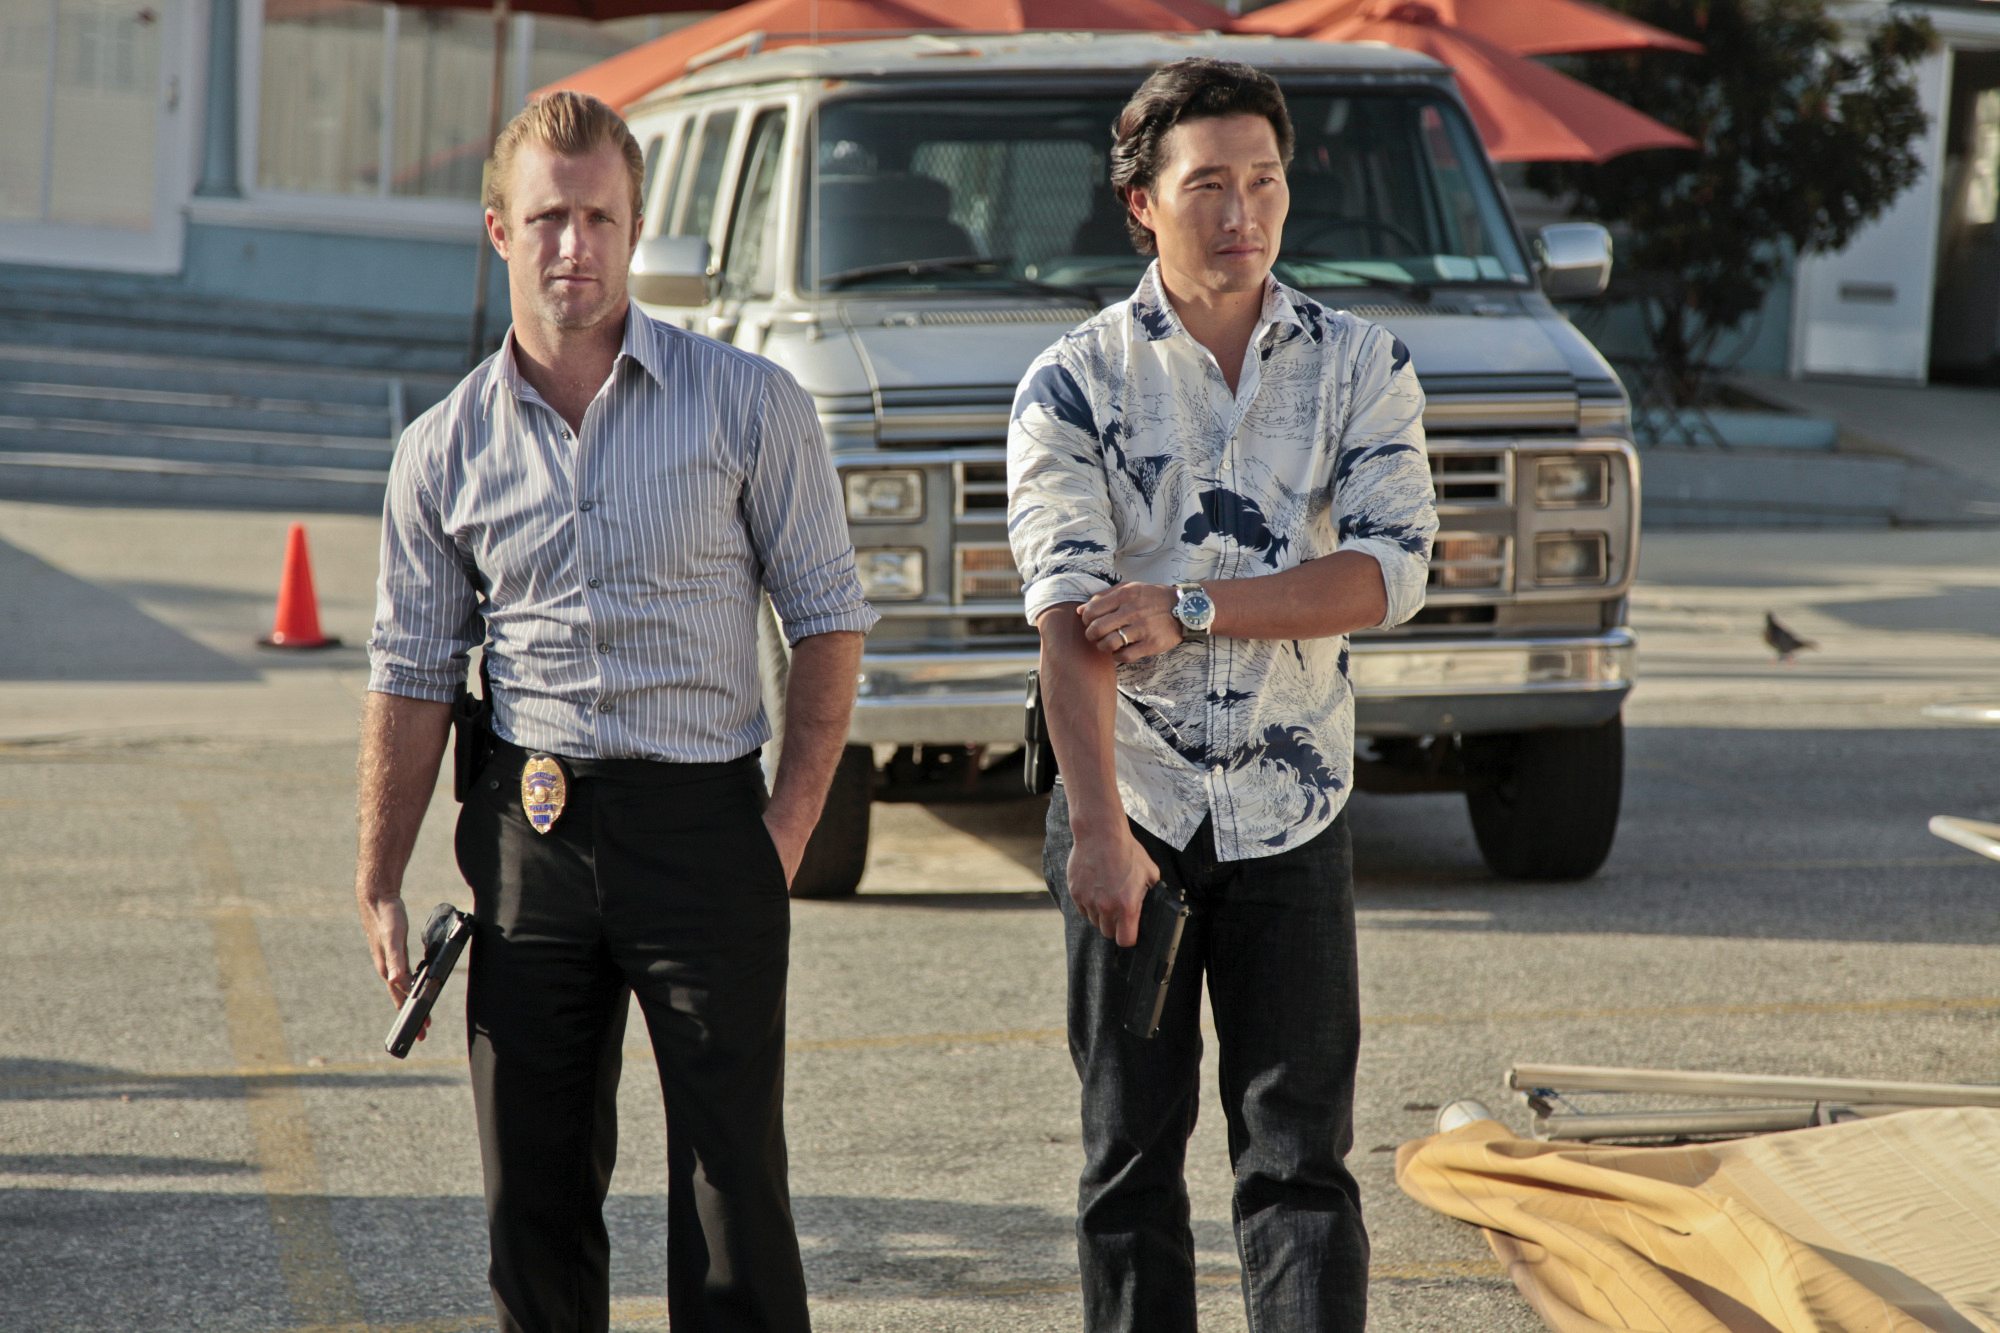 Part of the Hawaii Five-0 team